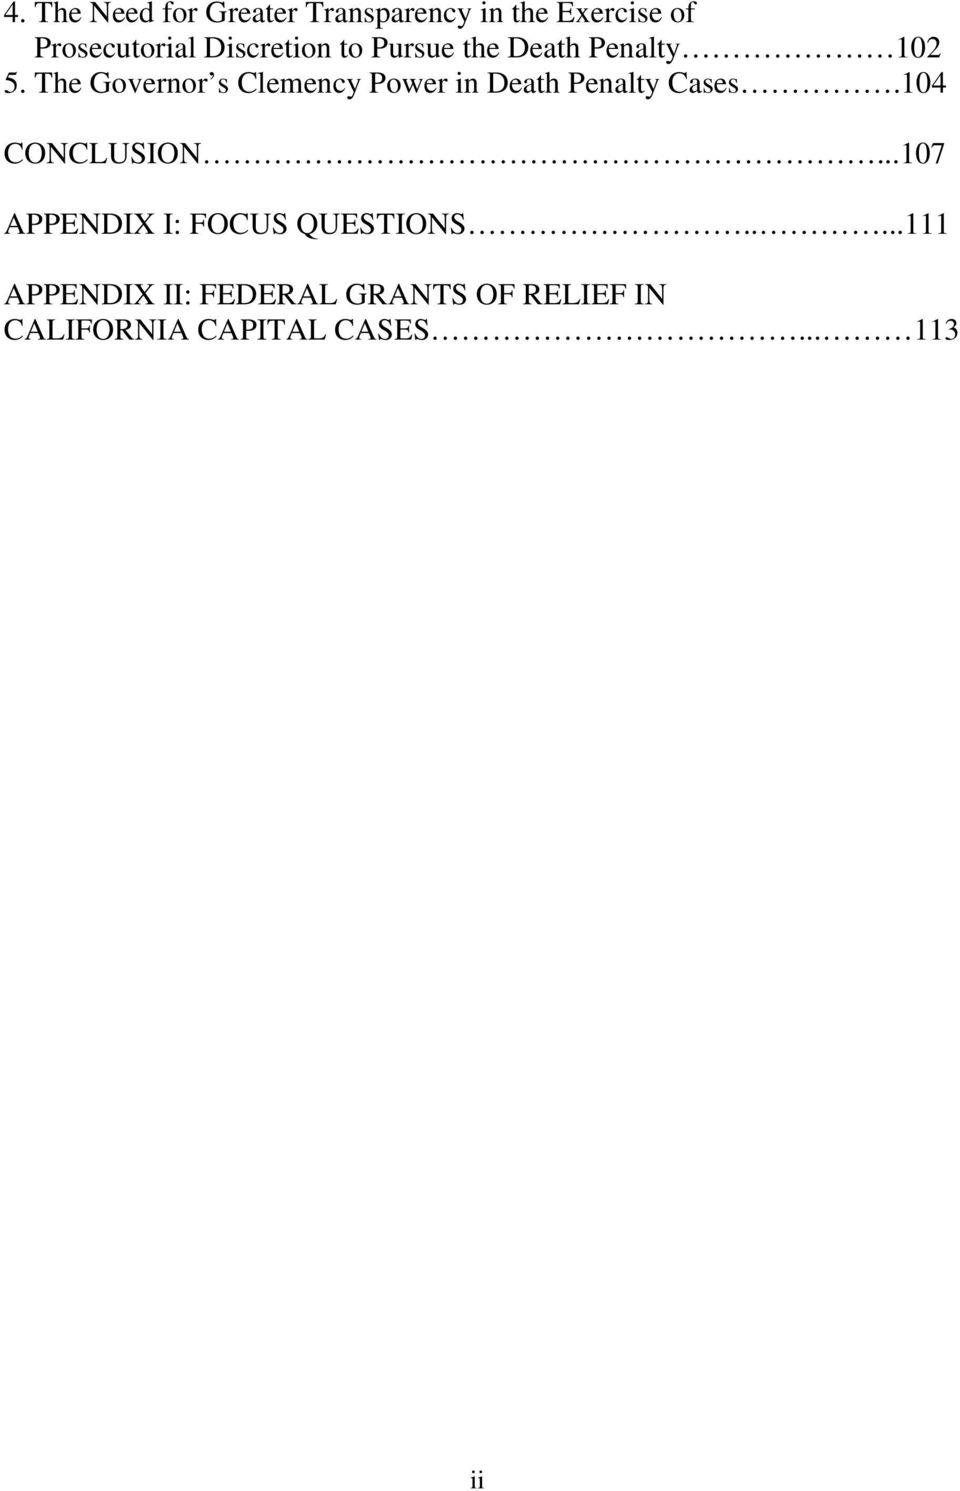 The Governor s Clemency Power in Death Penalty Cases.104 CONCLUSION.